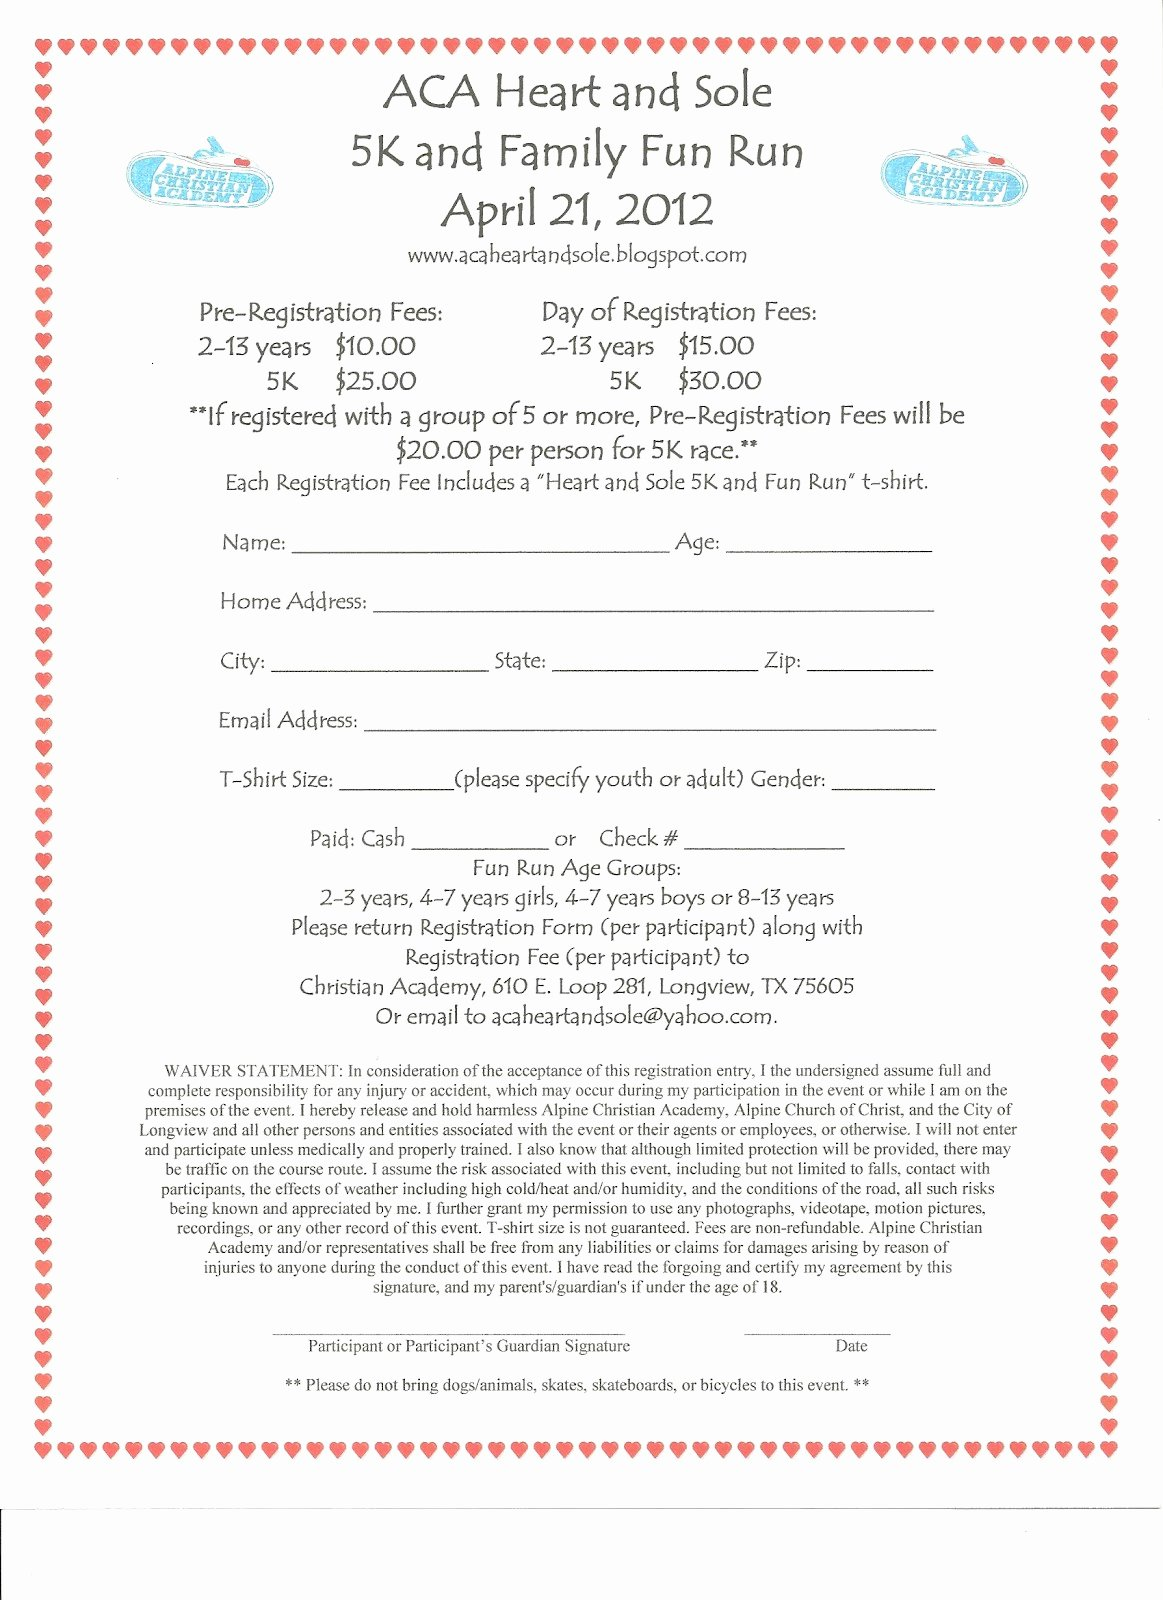 5k Race Registration form Template Lovely form Design Category Page 18 Jemome